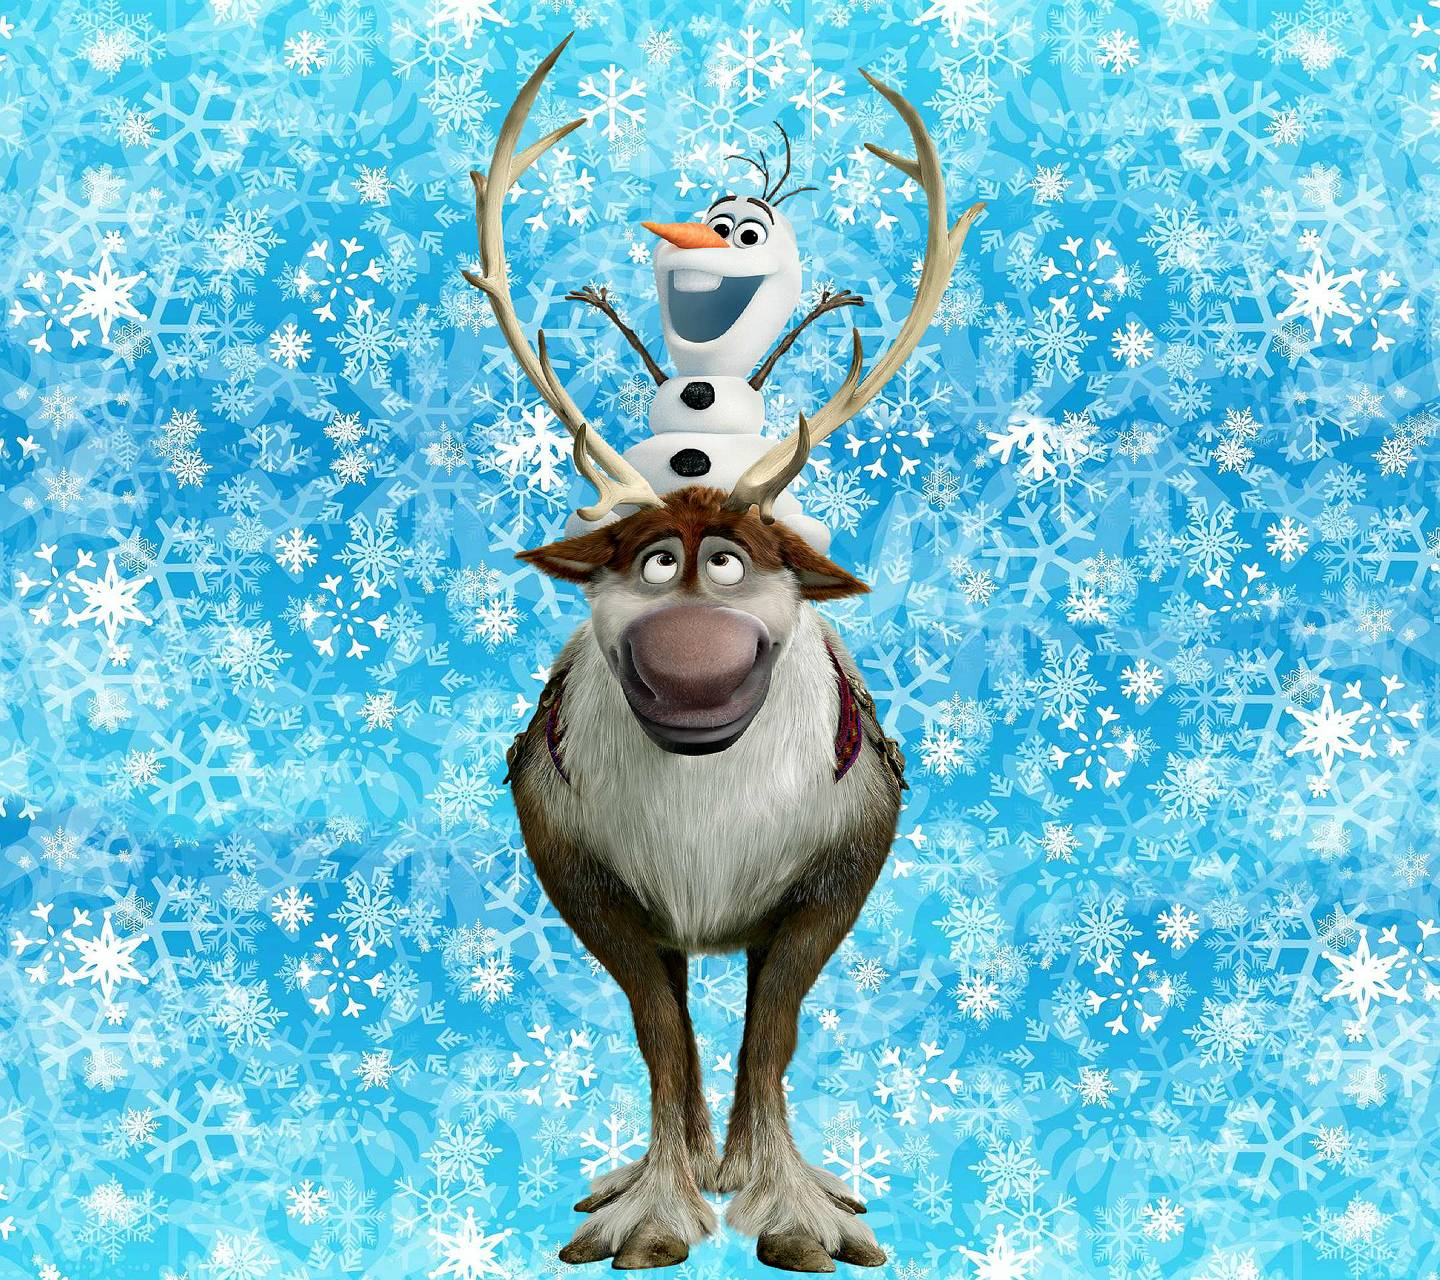 Olaf Wallpapers: Olaf Sven Wallpaper By ____S